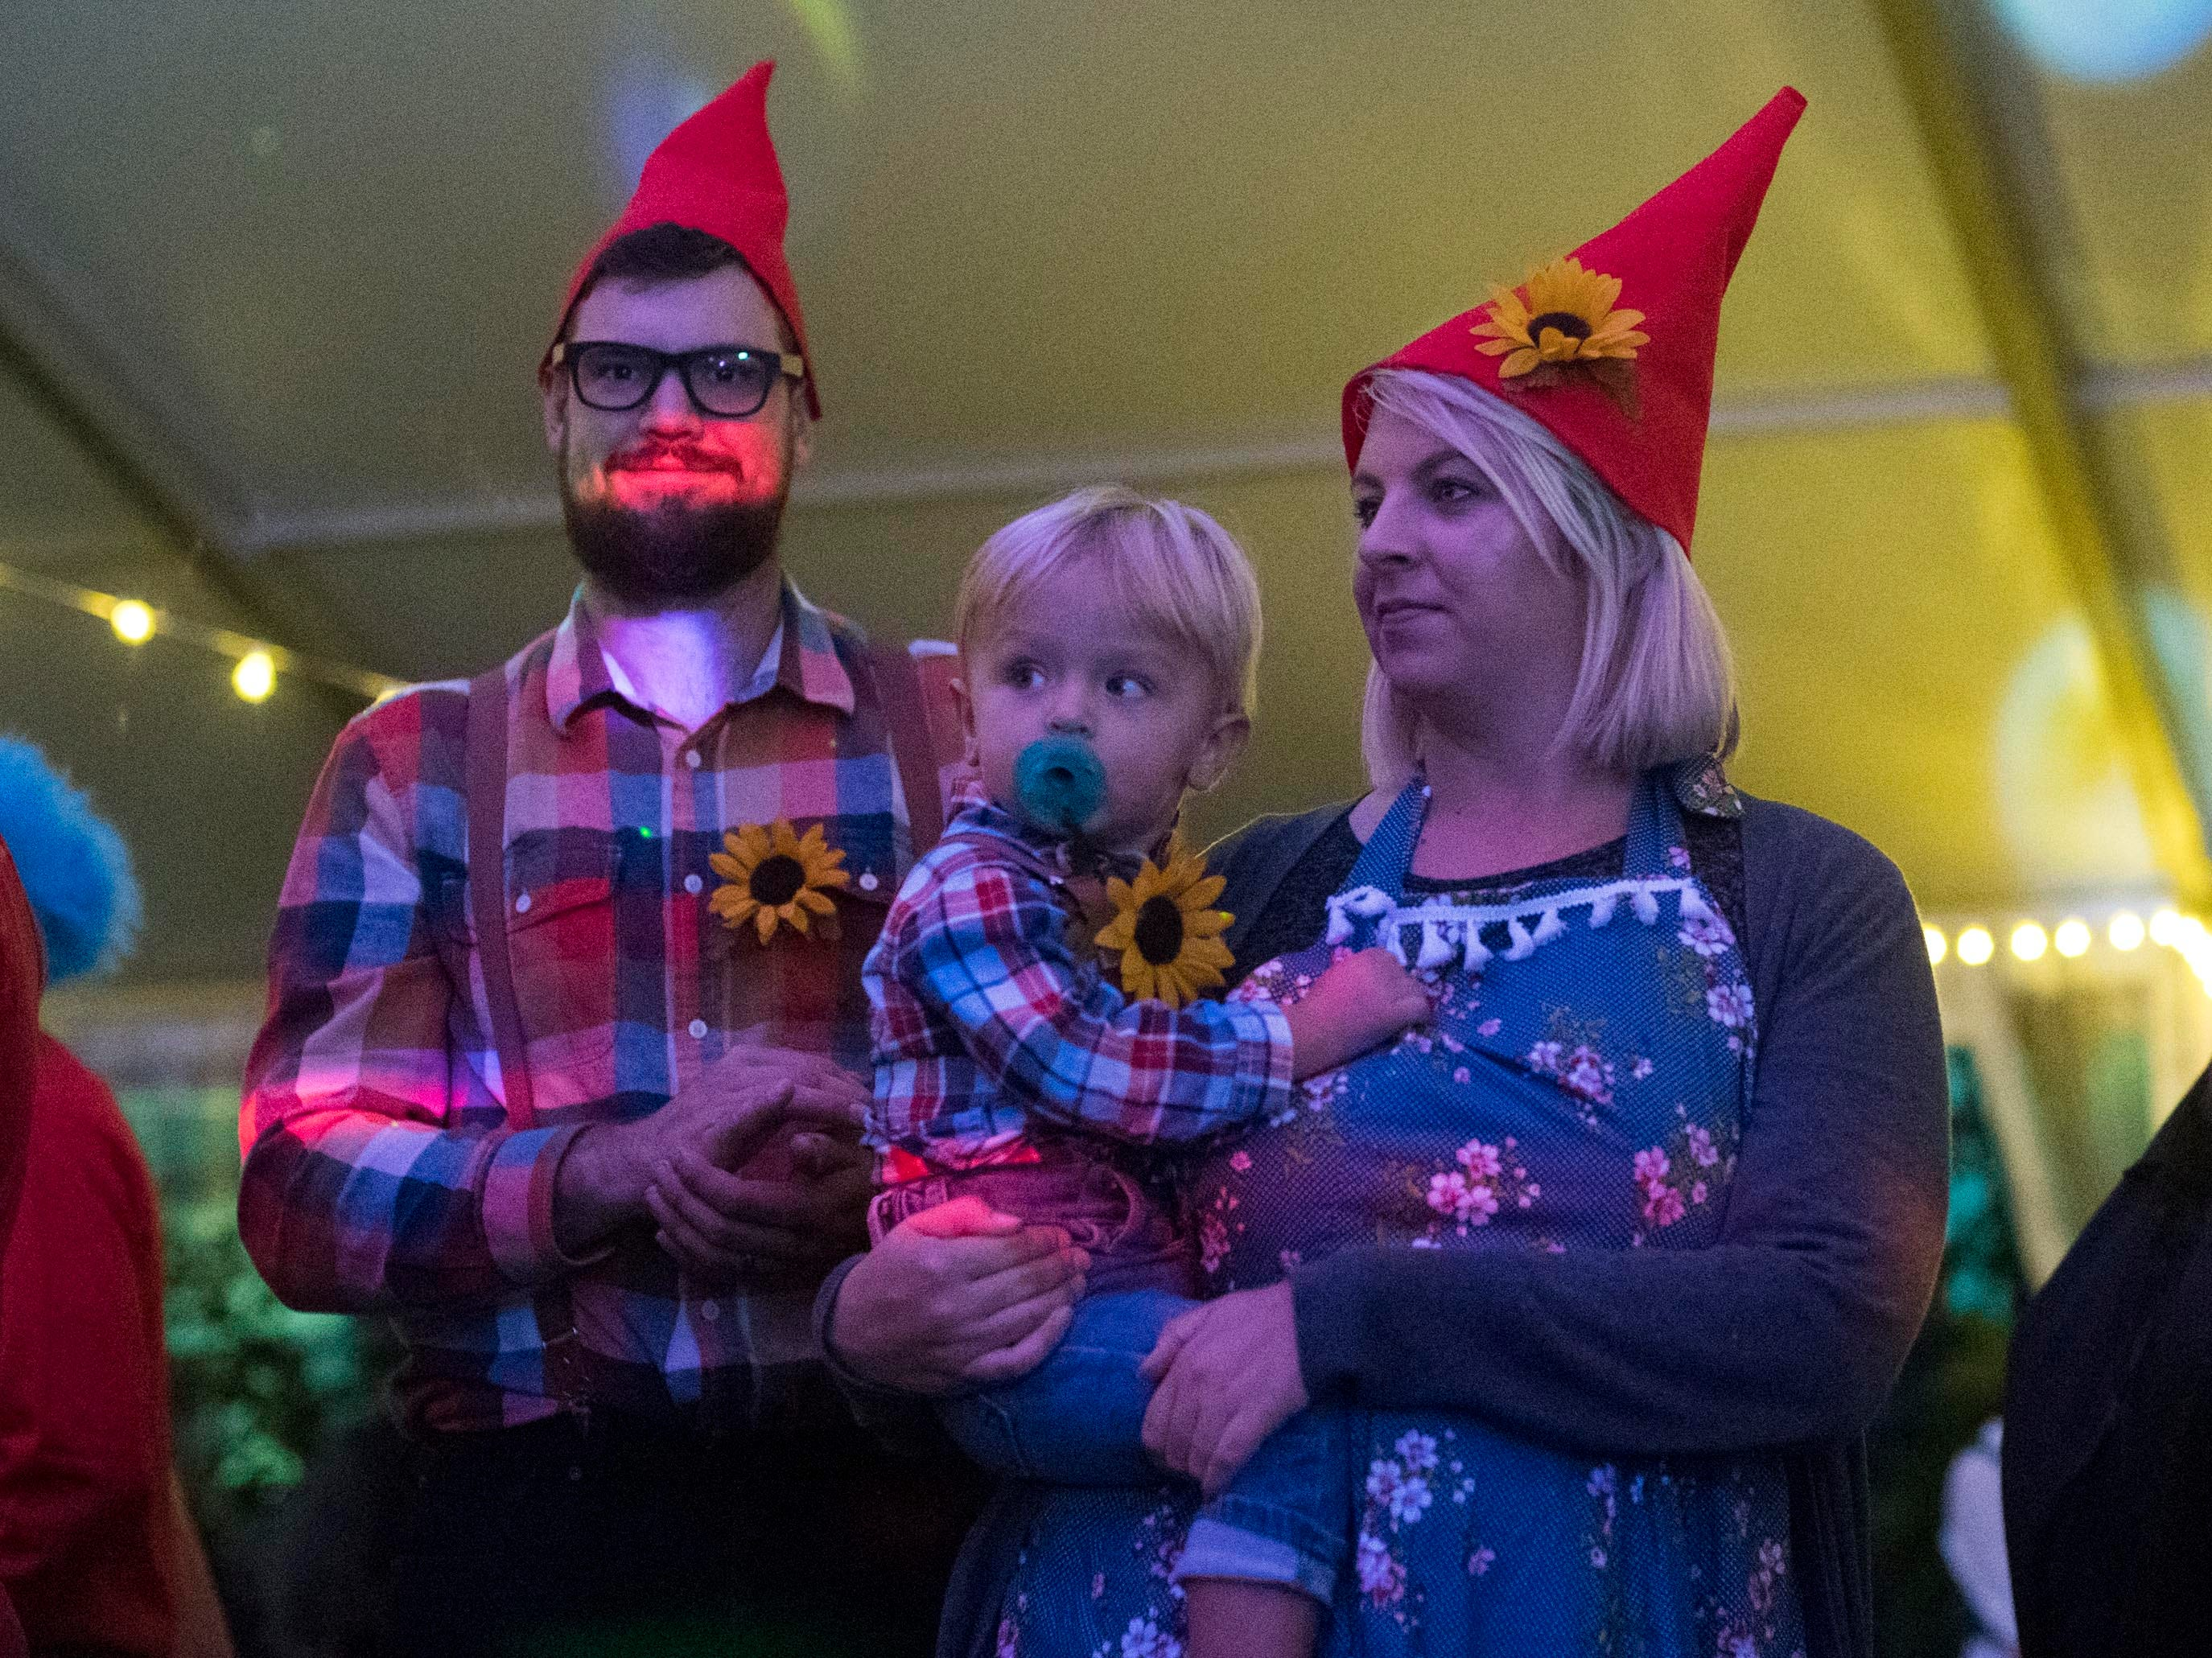 A family of gnomes attend the Monster Mash dance party during Boo! at the Zoo on Saturday, October 20, 2018.